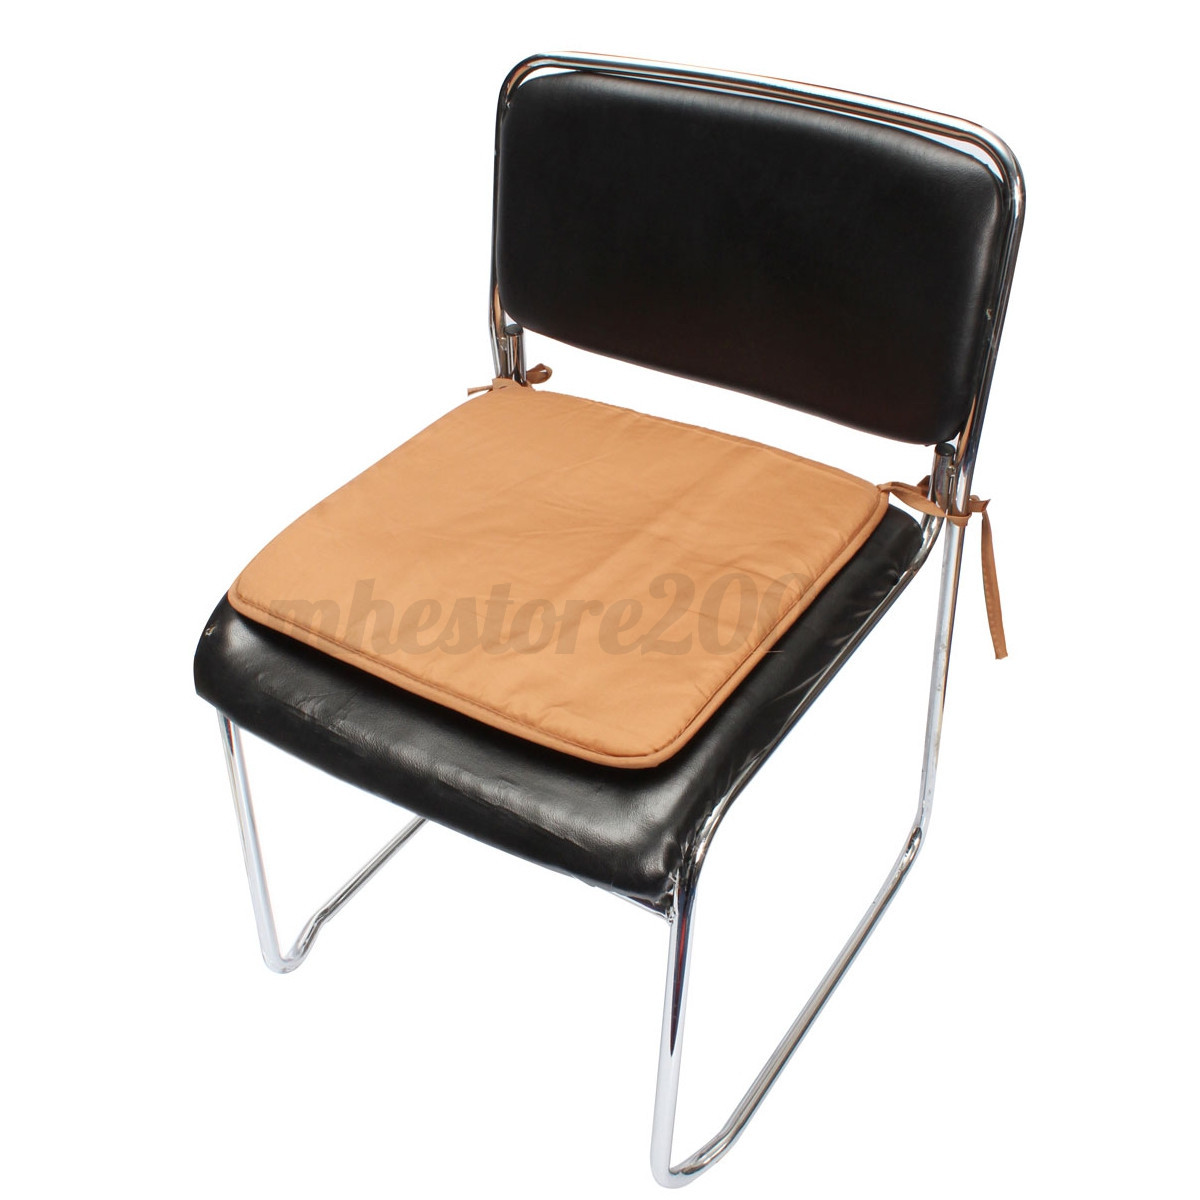 soft cushion office chair garden indoor dining seat pad tie on square foam patio ebay. Black Bedroom Furniture Sets. Home Design Ideas